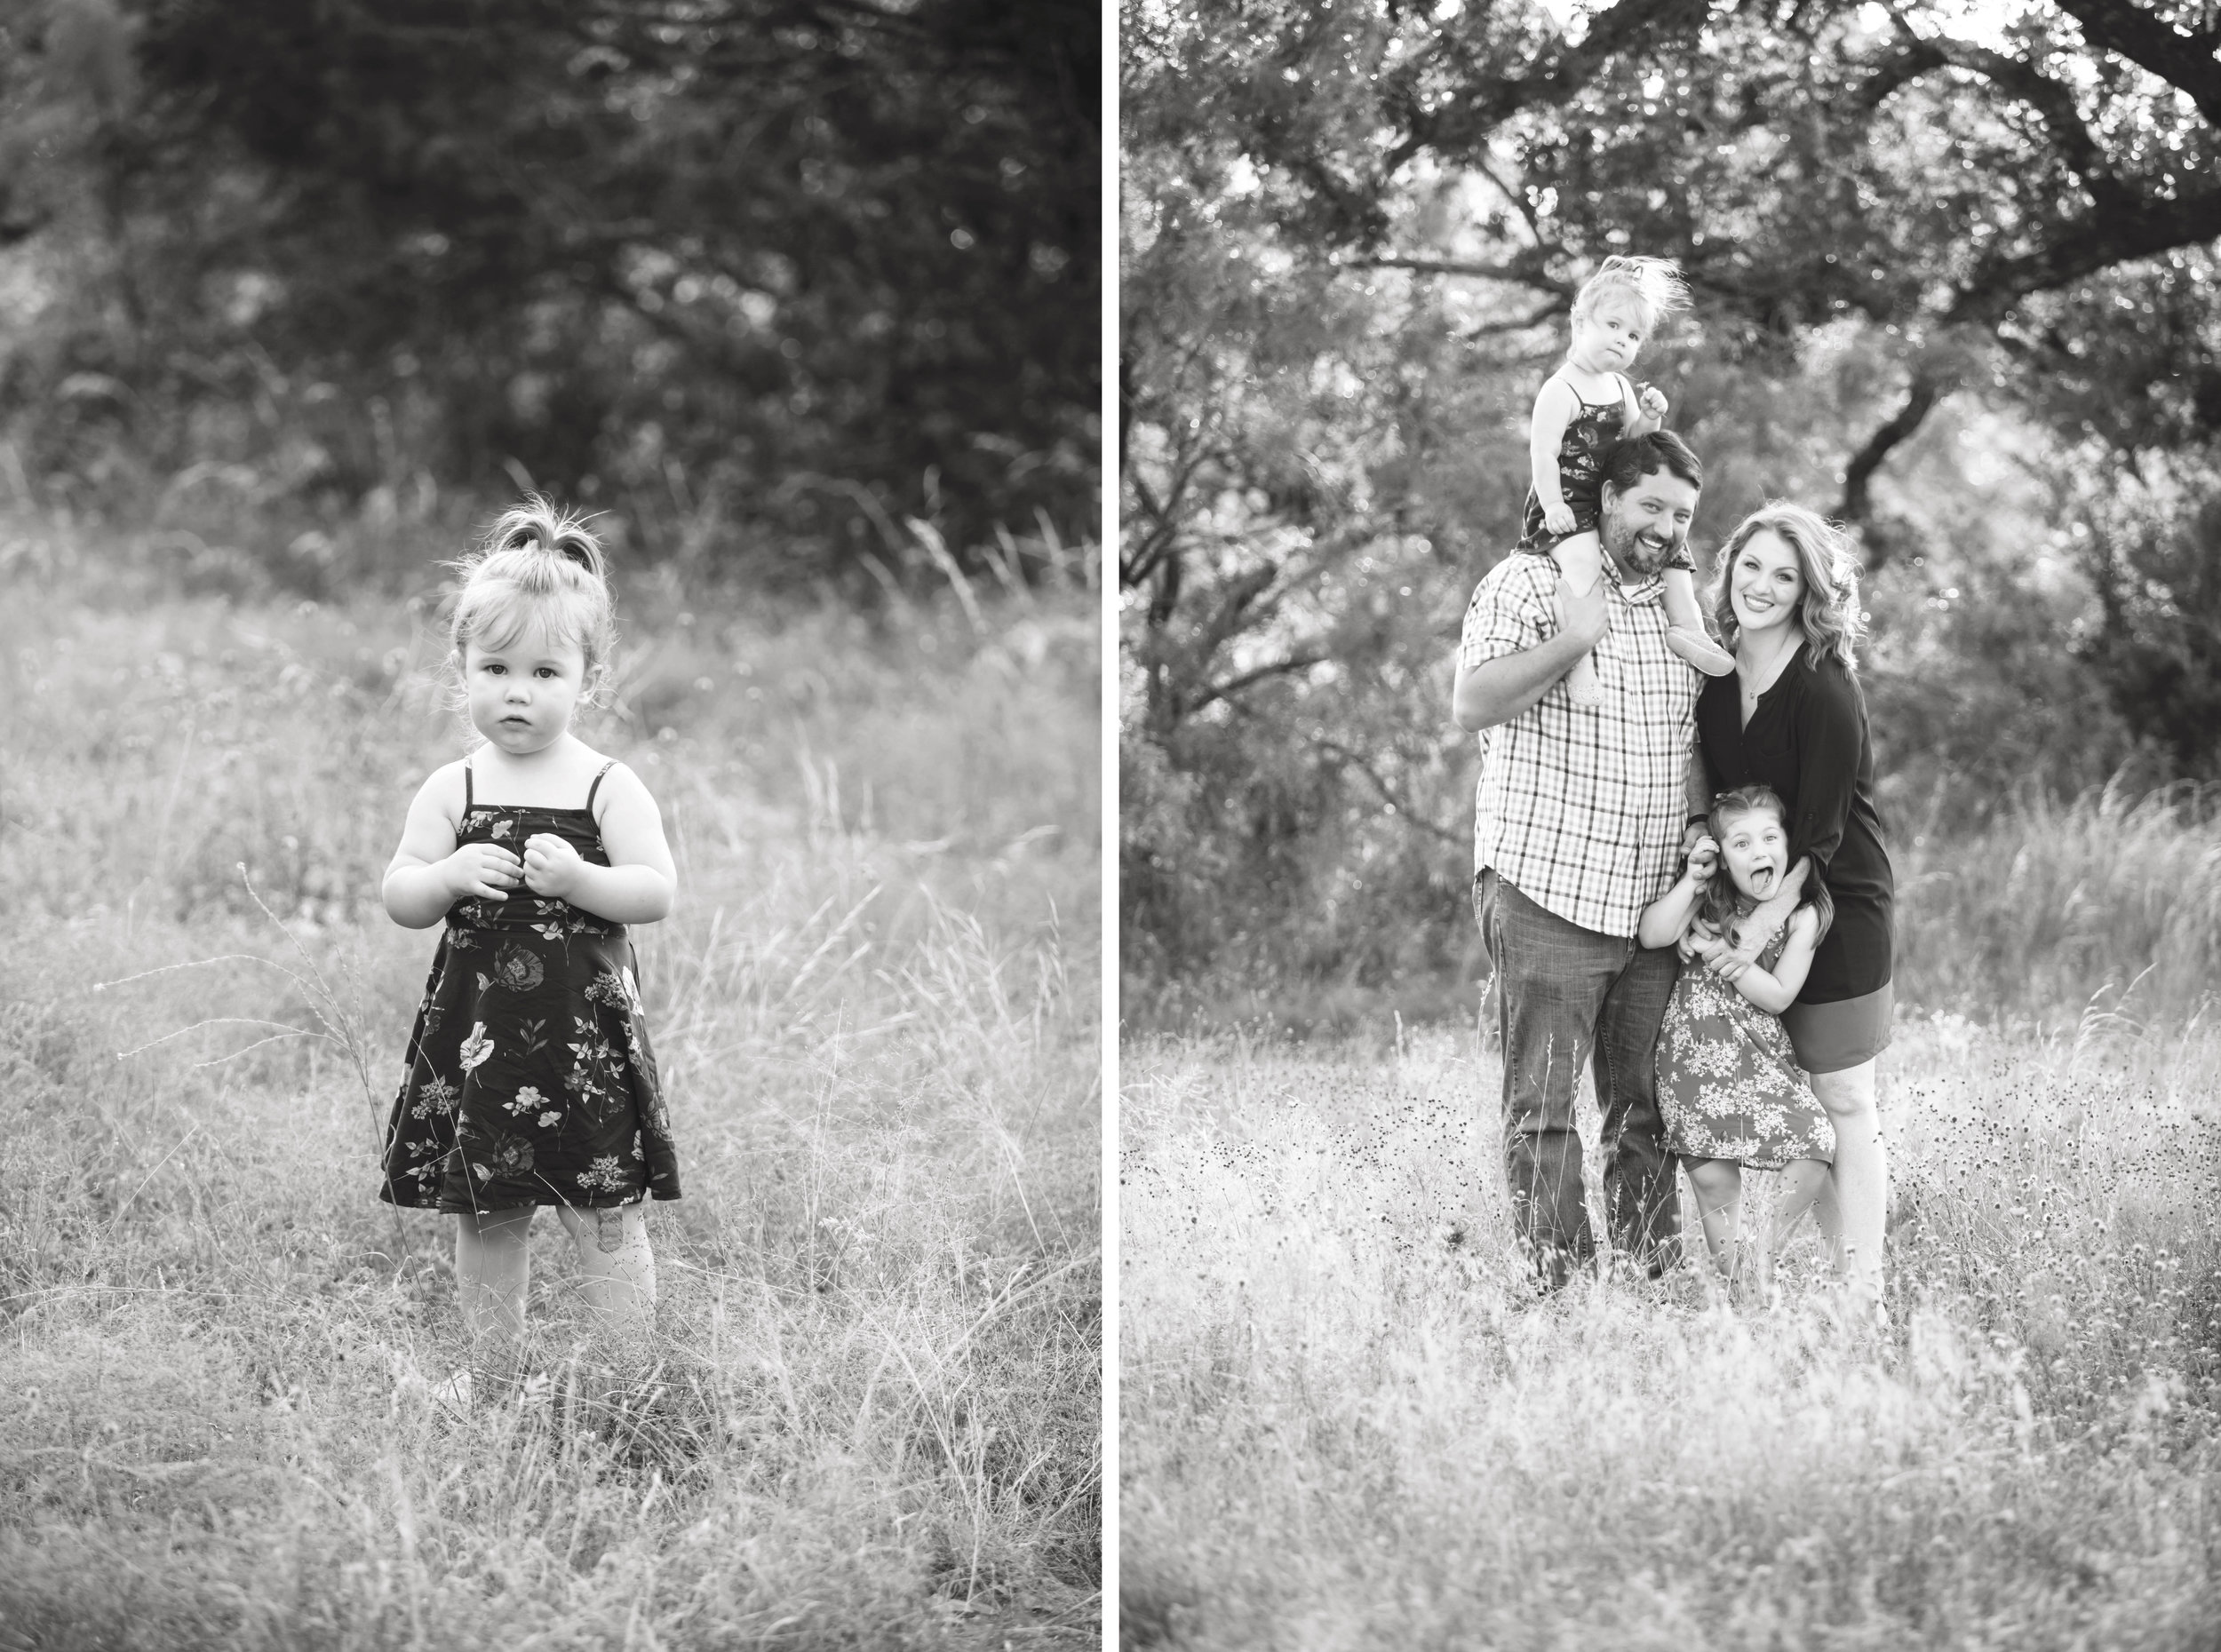 Marble_Falls_Family_Photographer_Jenna_Petty_18.jpg